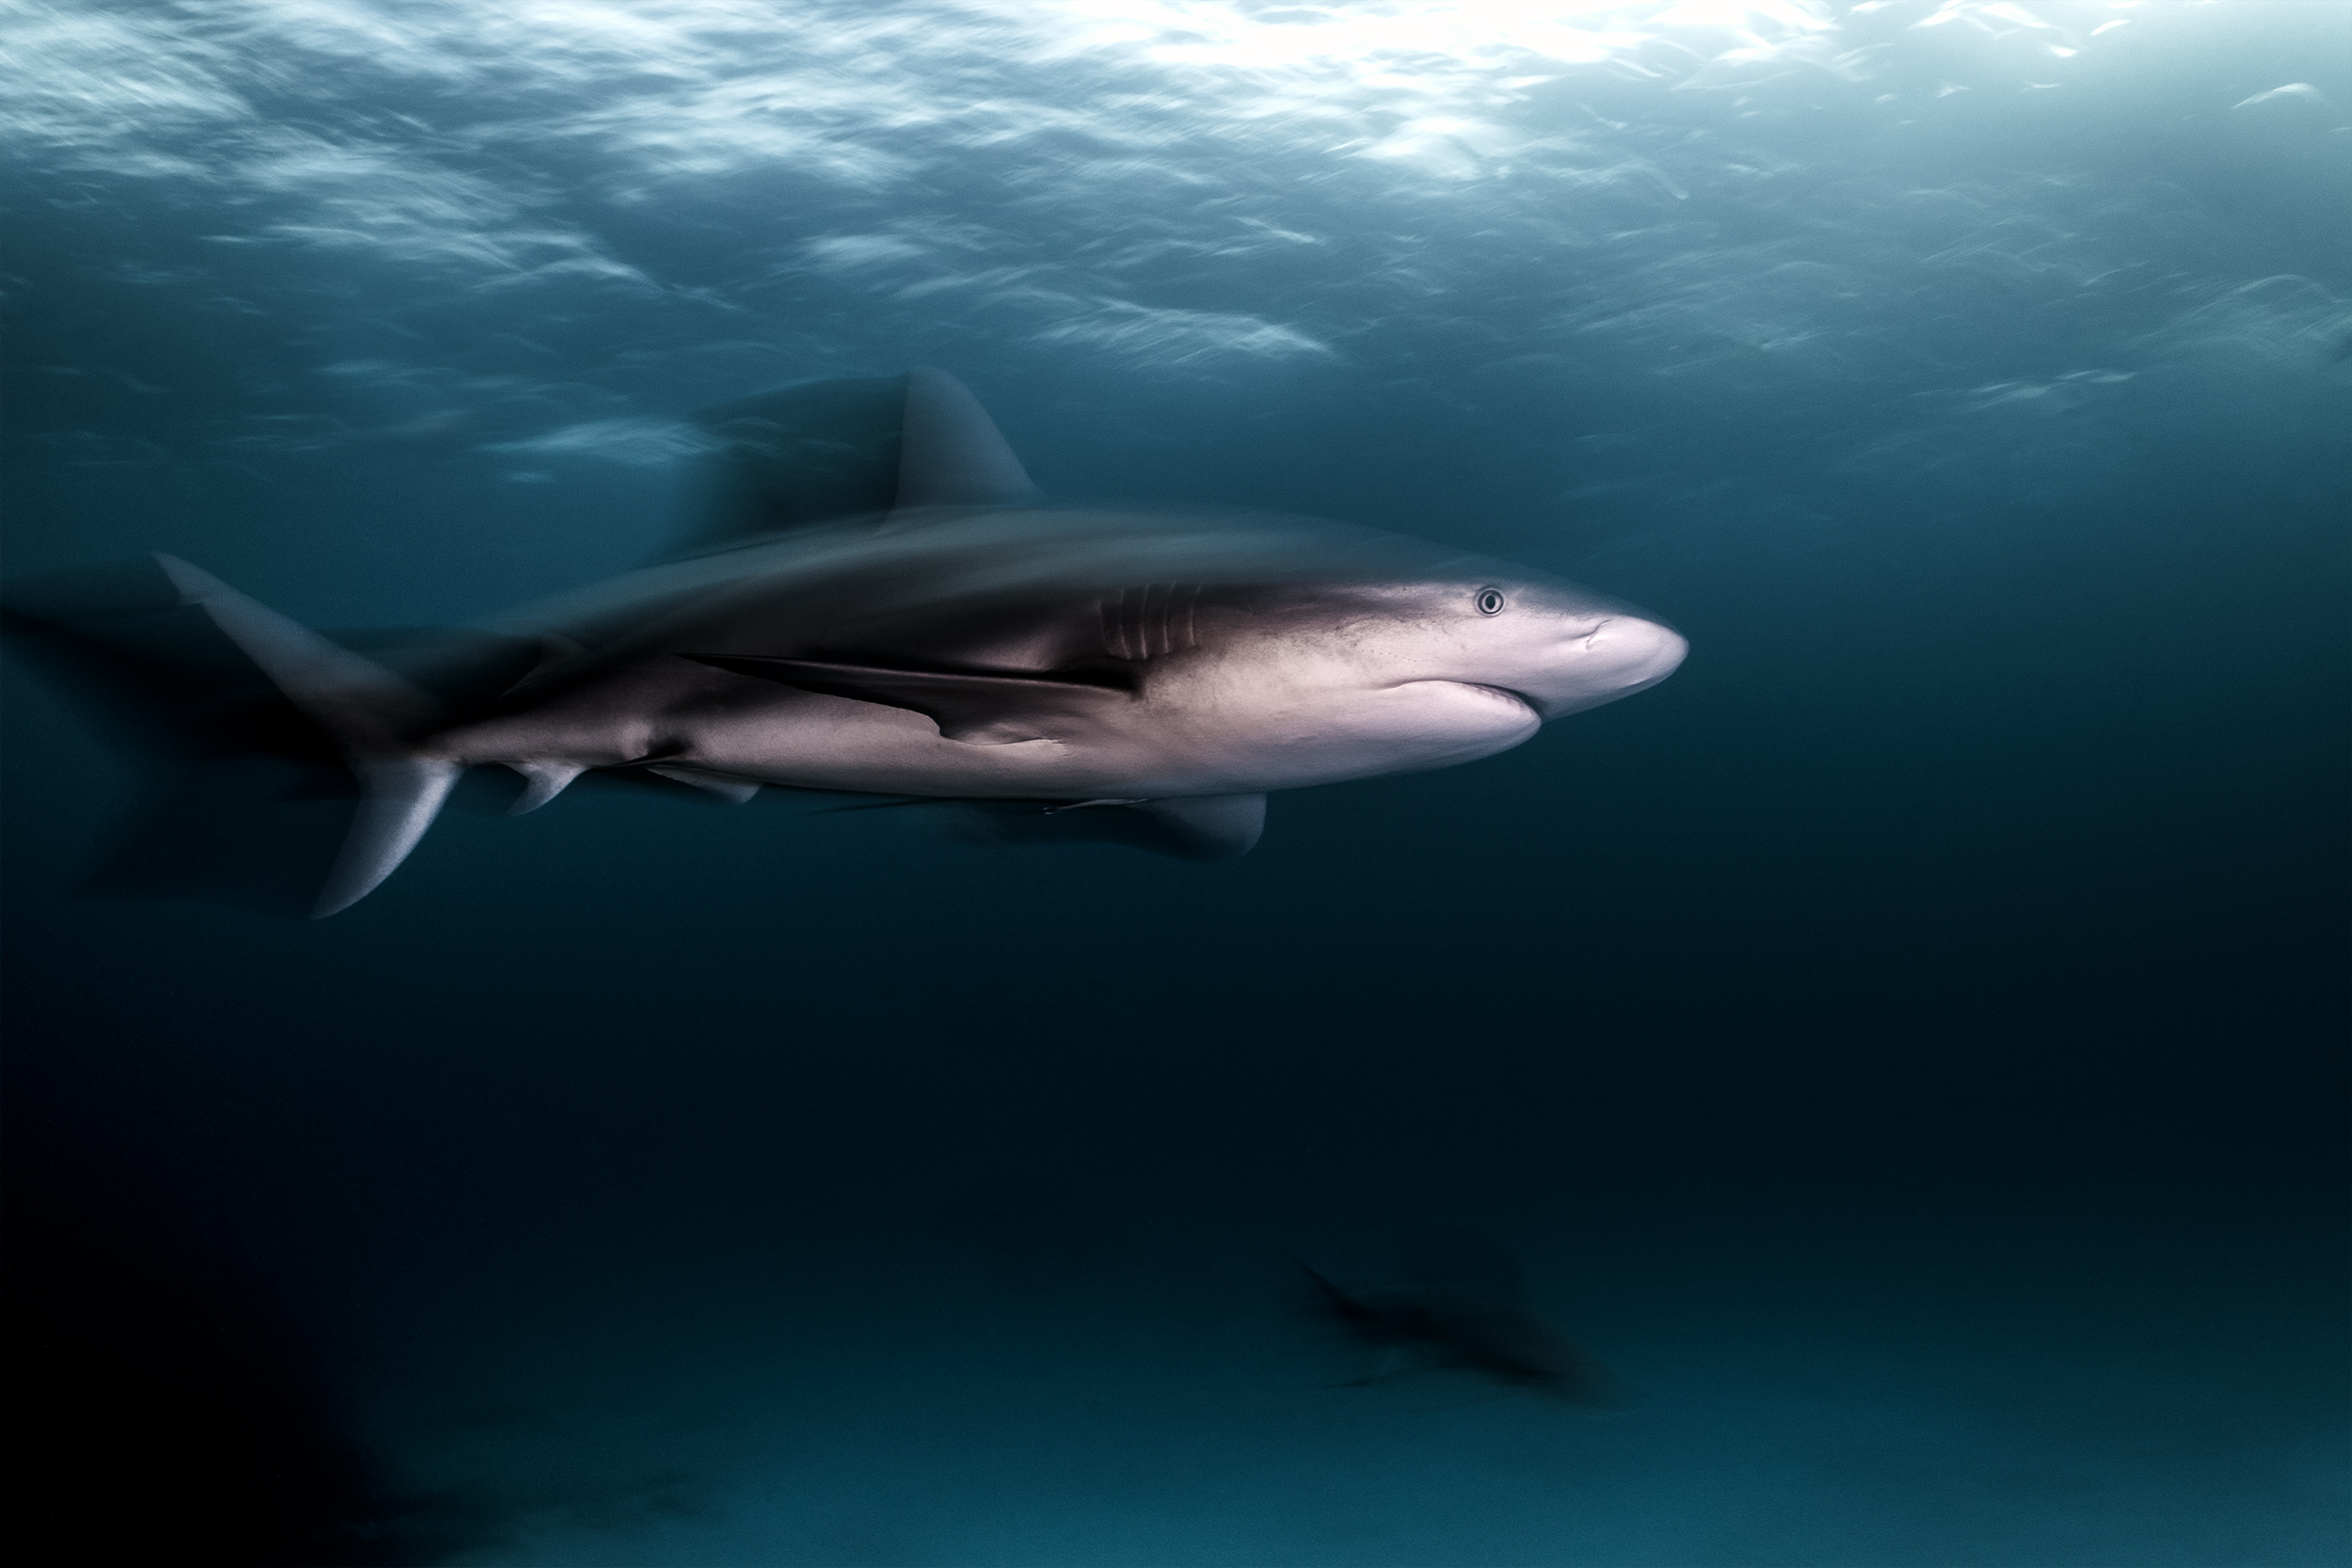 Tiger beach - caribbean reef shark / motion blur